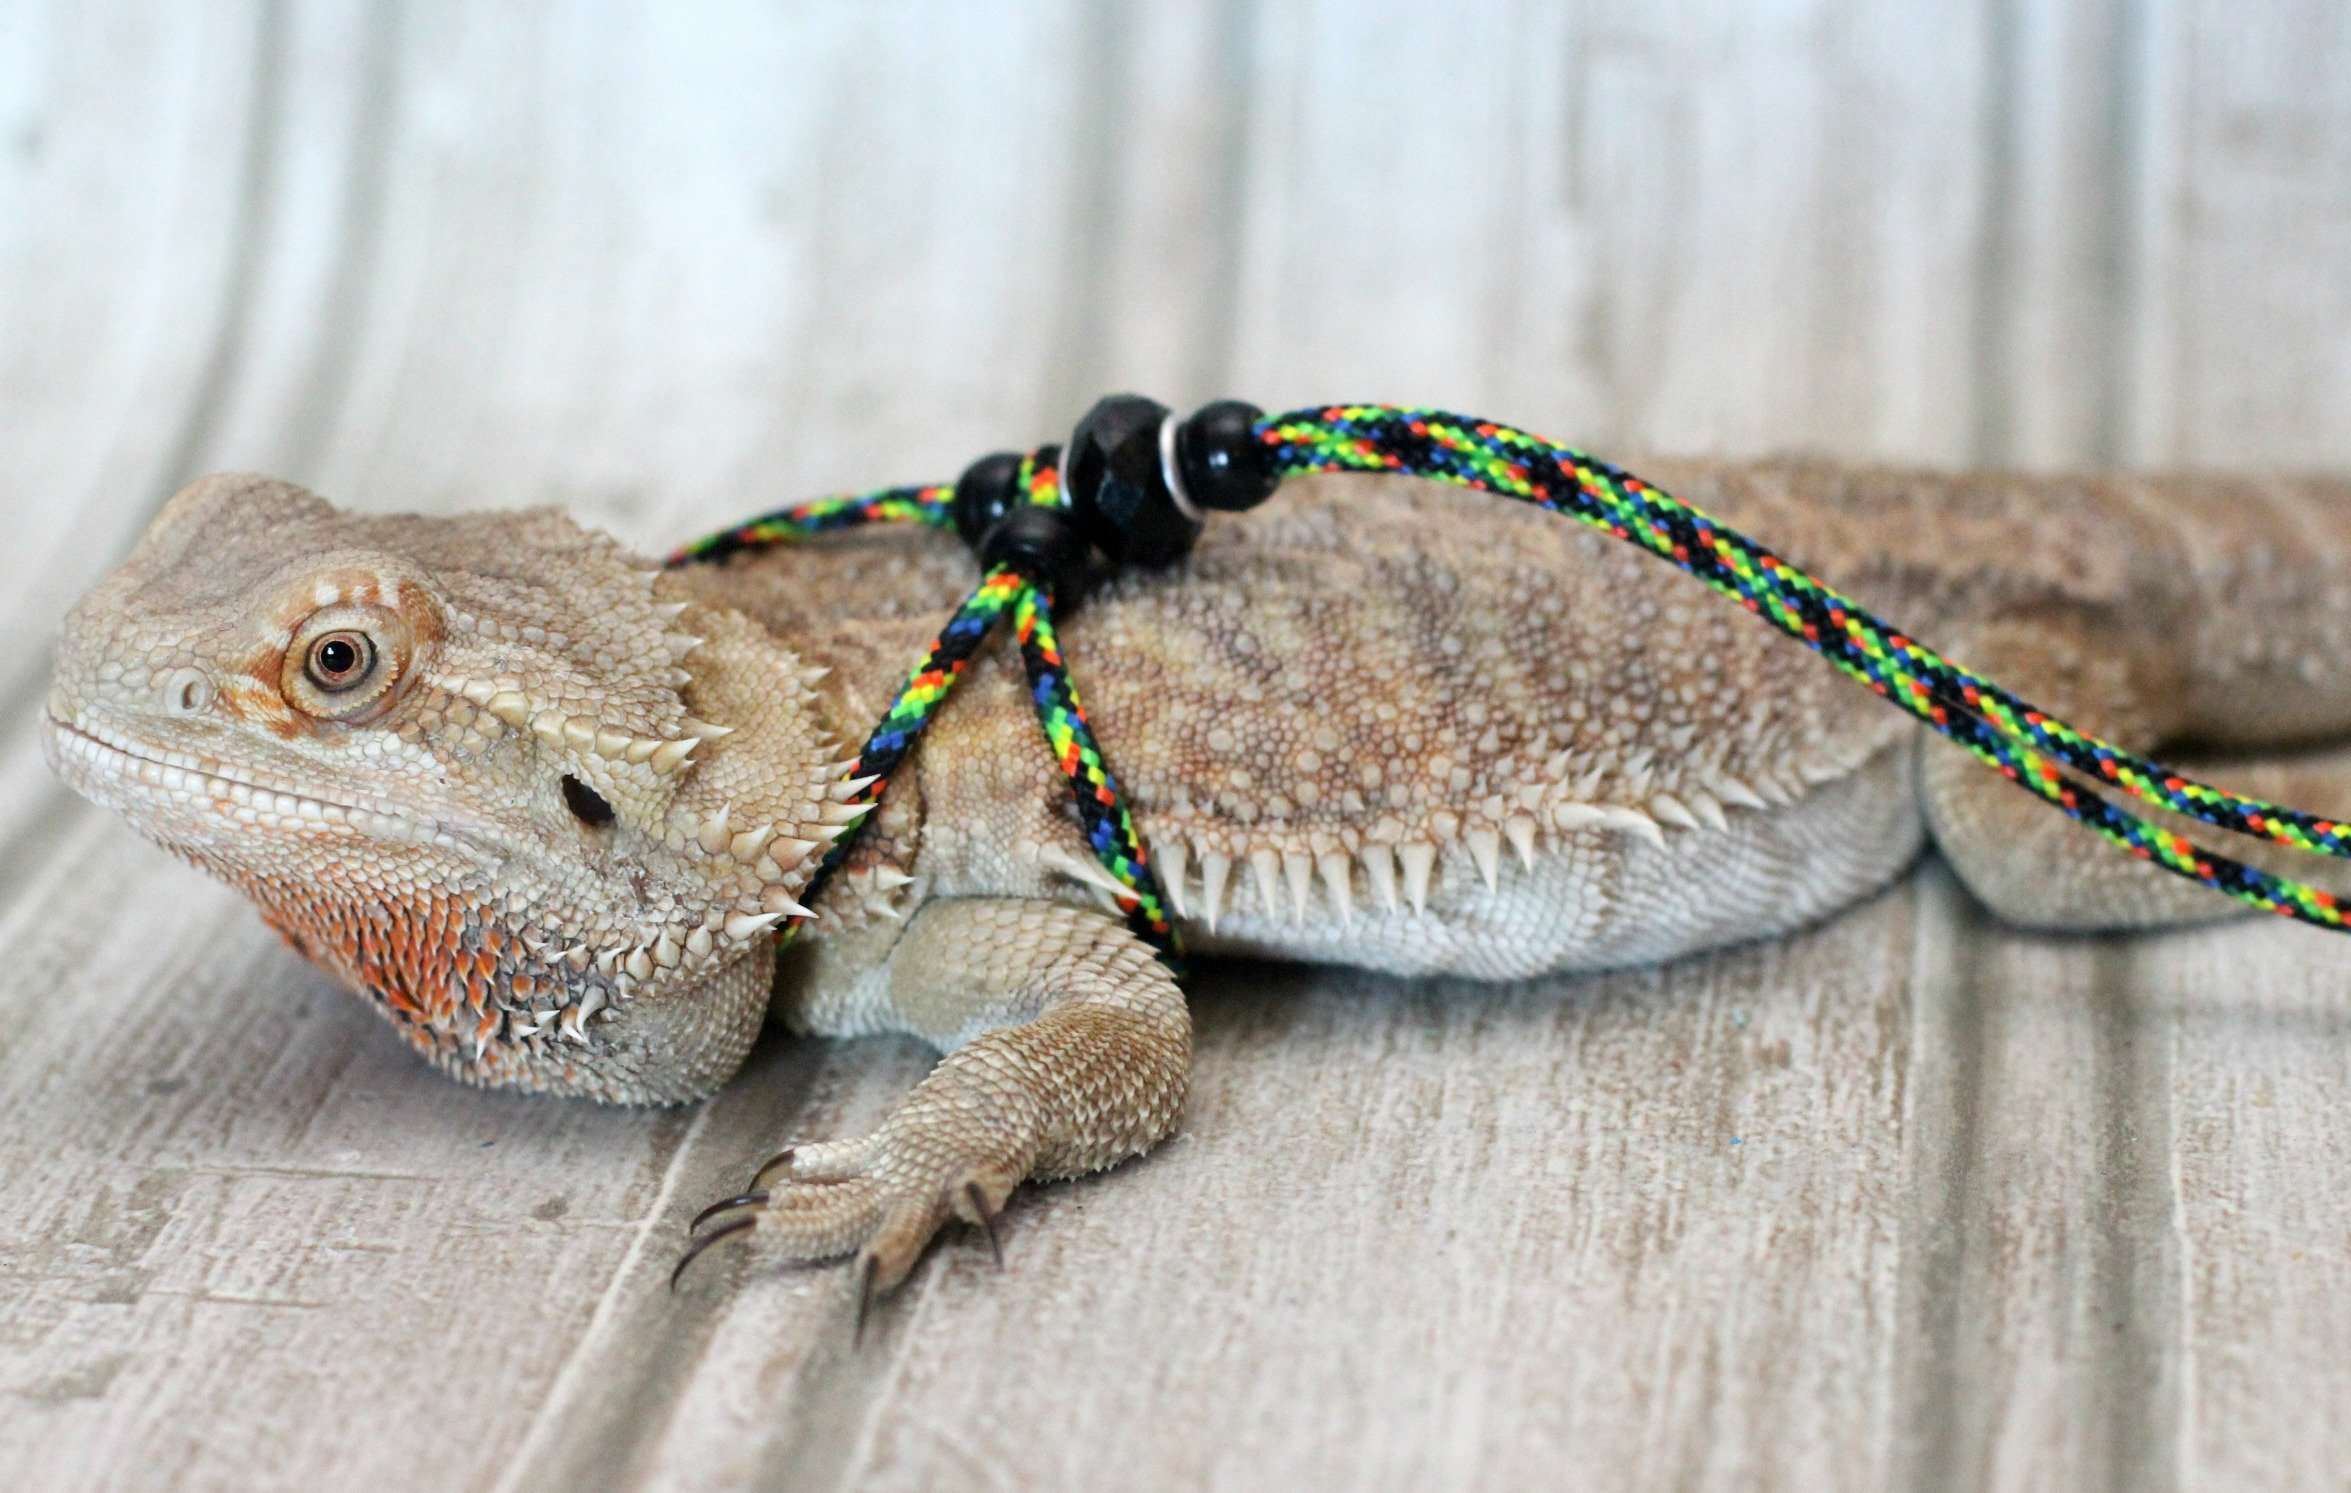 Adjustable Reptile Leash™ Harness Great for Reptiles or Small Pets 100% Adjustable One Size Fits Most (6 Feet, Multi)